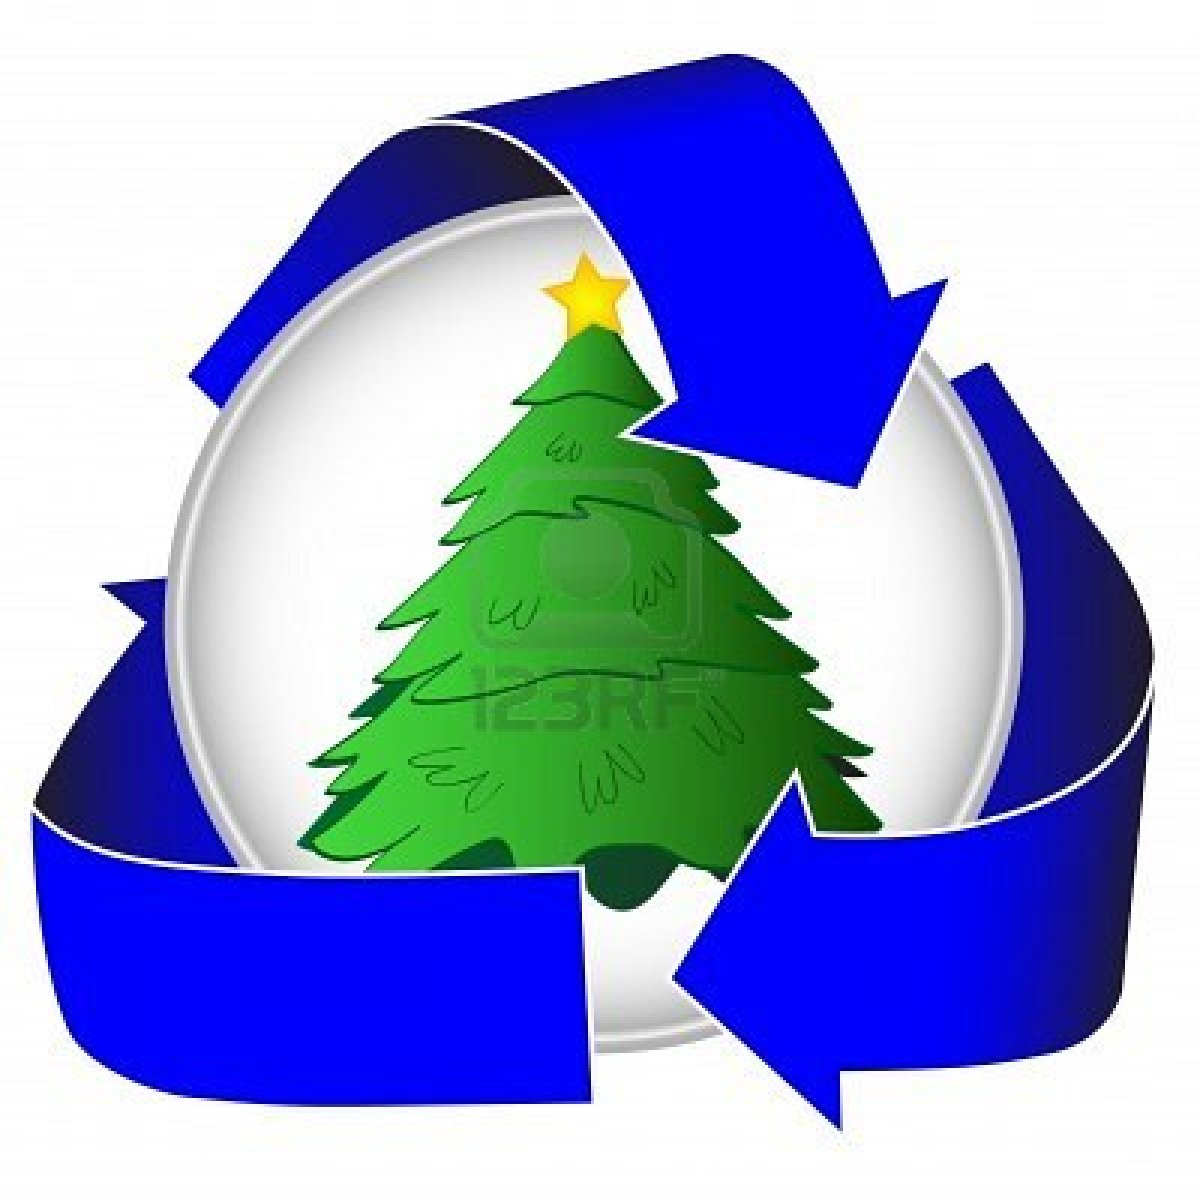 Lissardagh Cleaning Services Christmas Tree Recycling Cork